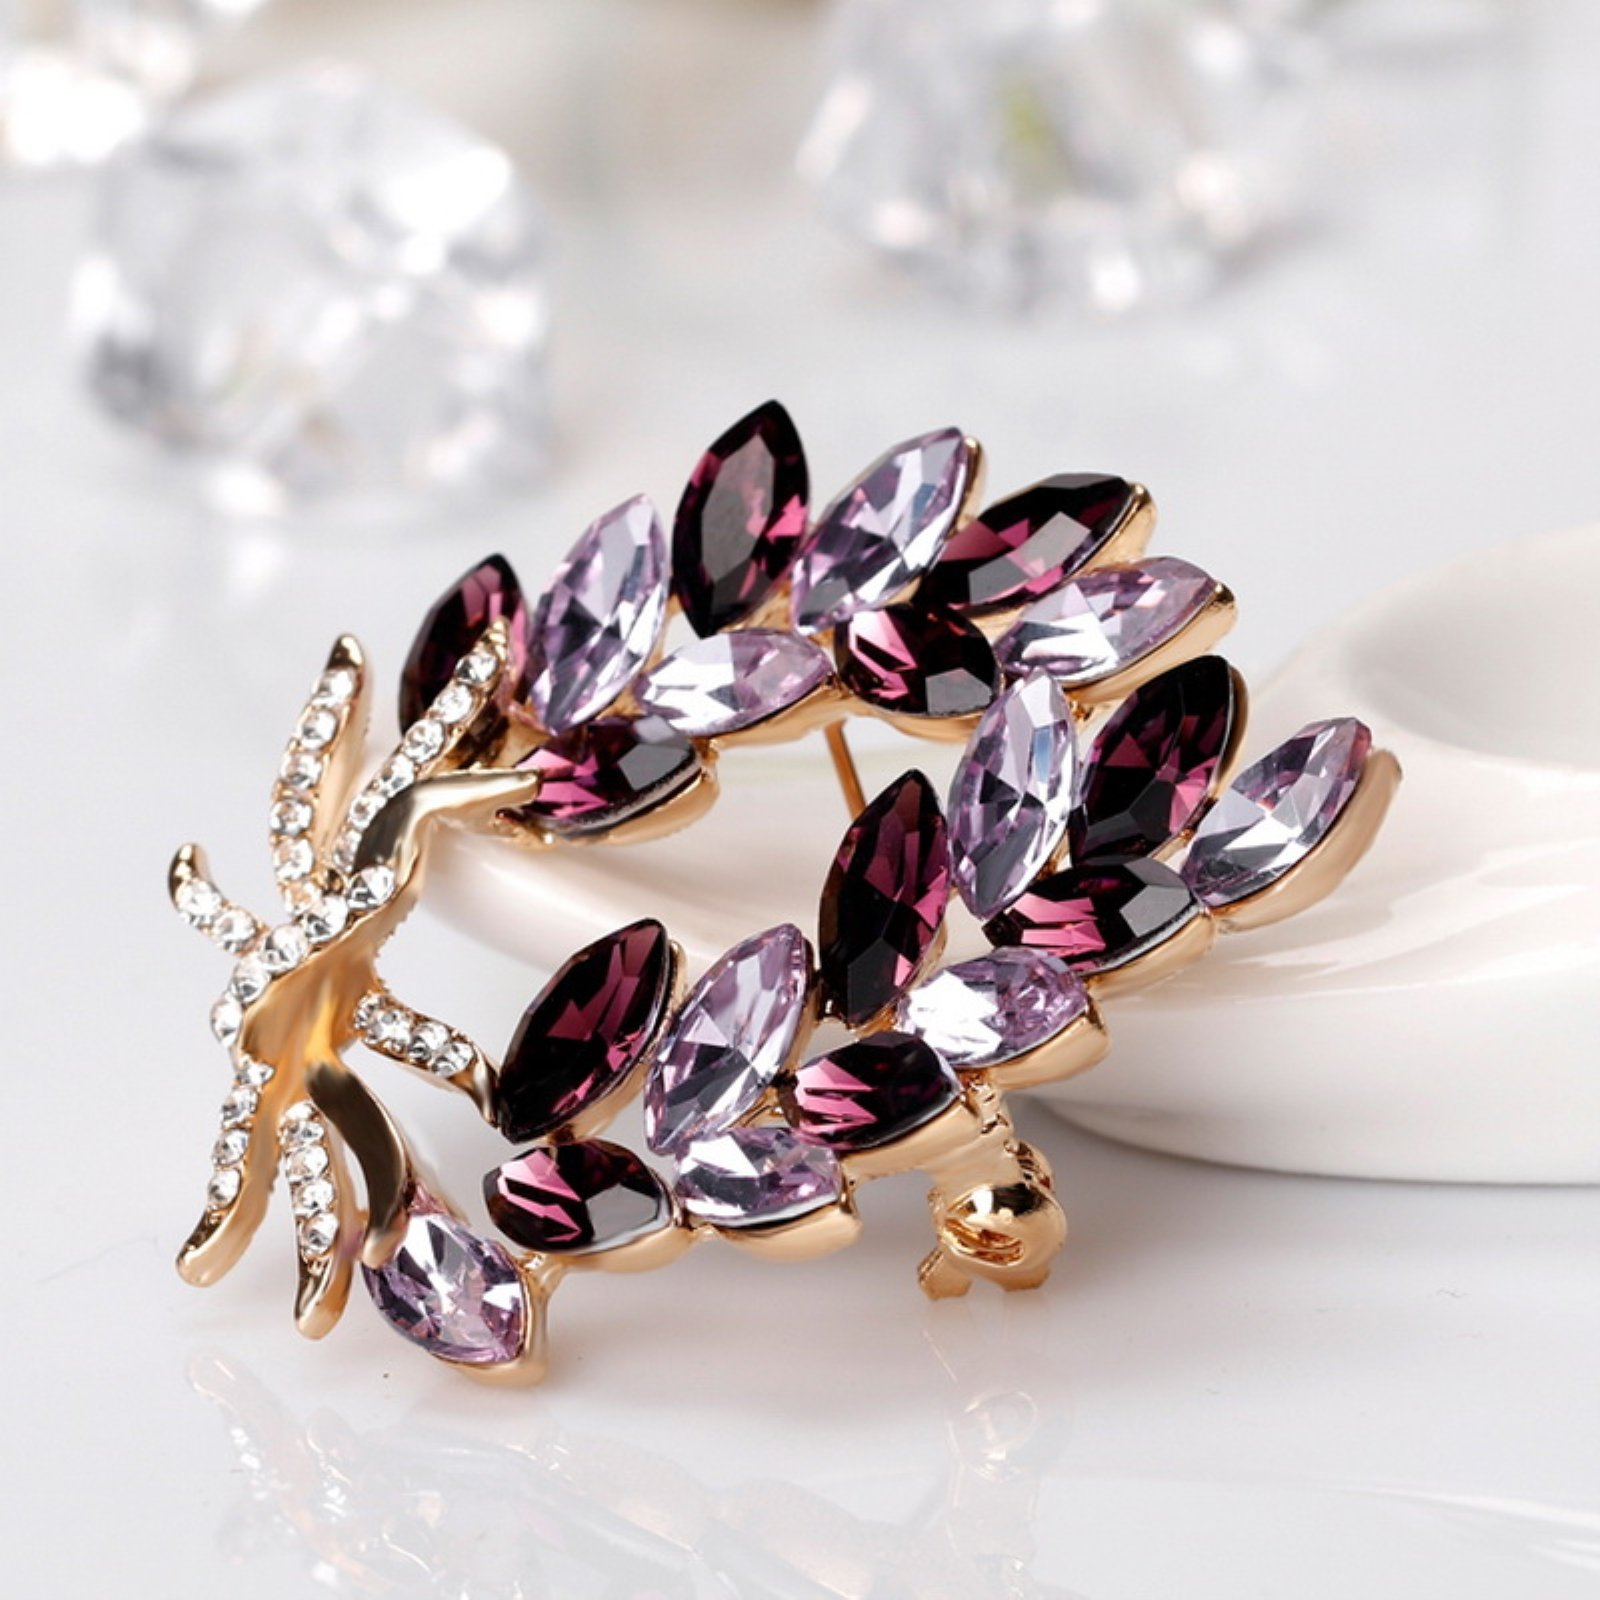 ptk12 Coat Accessories Purple Crystal Flower Casual Party Bouquets Rhinestone Brooch by ptk12 (Image #4)